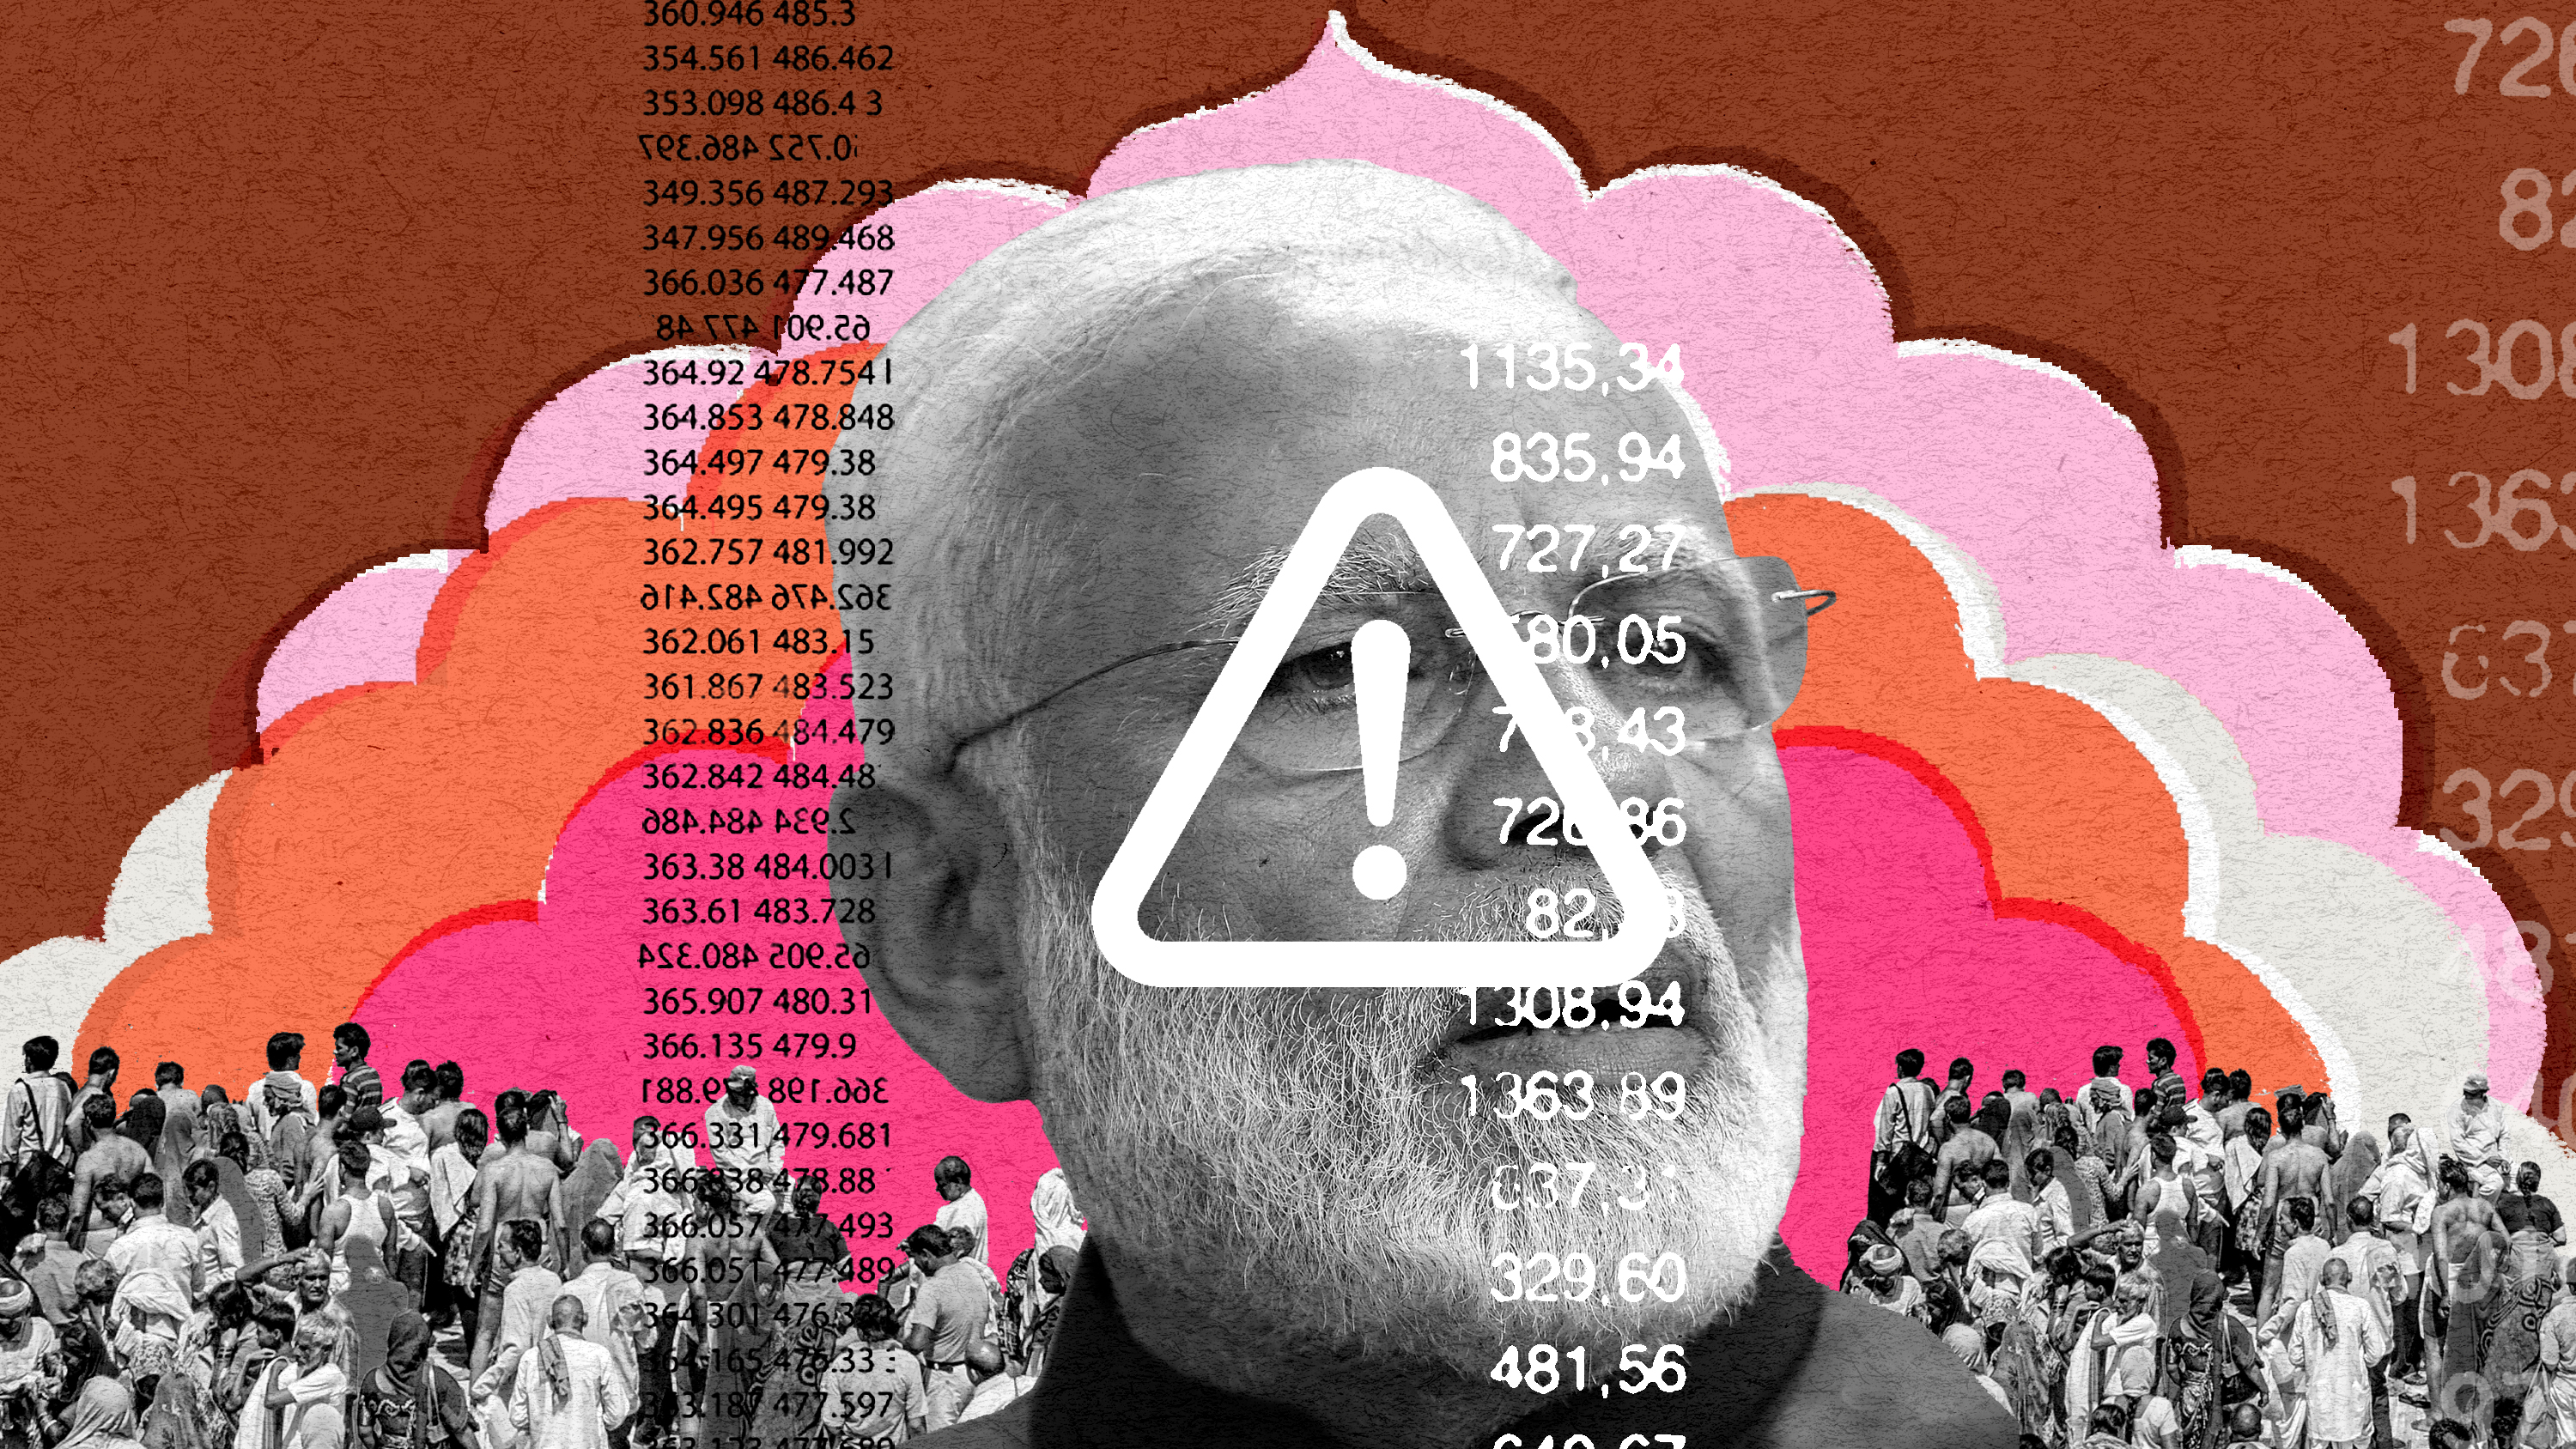 conceptual collage illustration showing crowds of people, Modi, and an error symbol